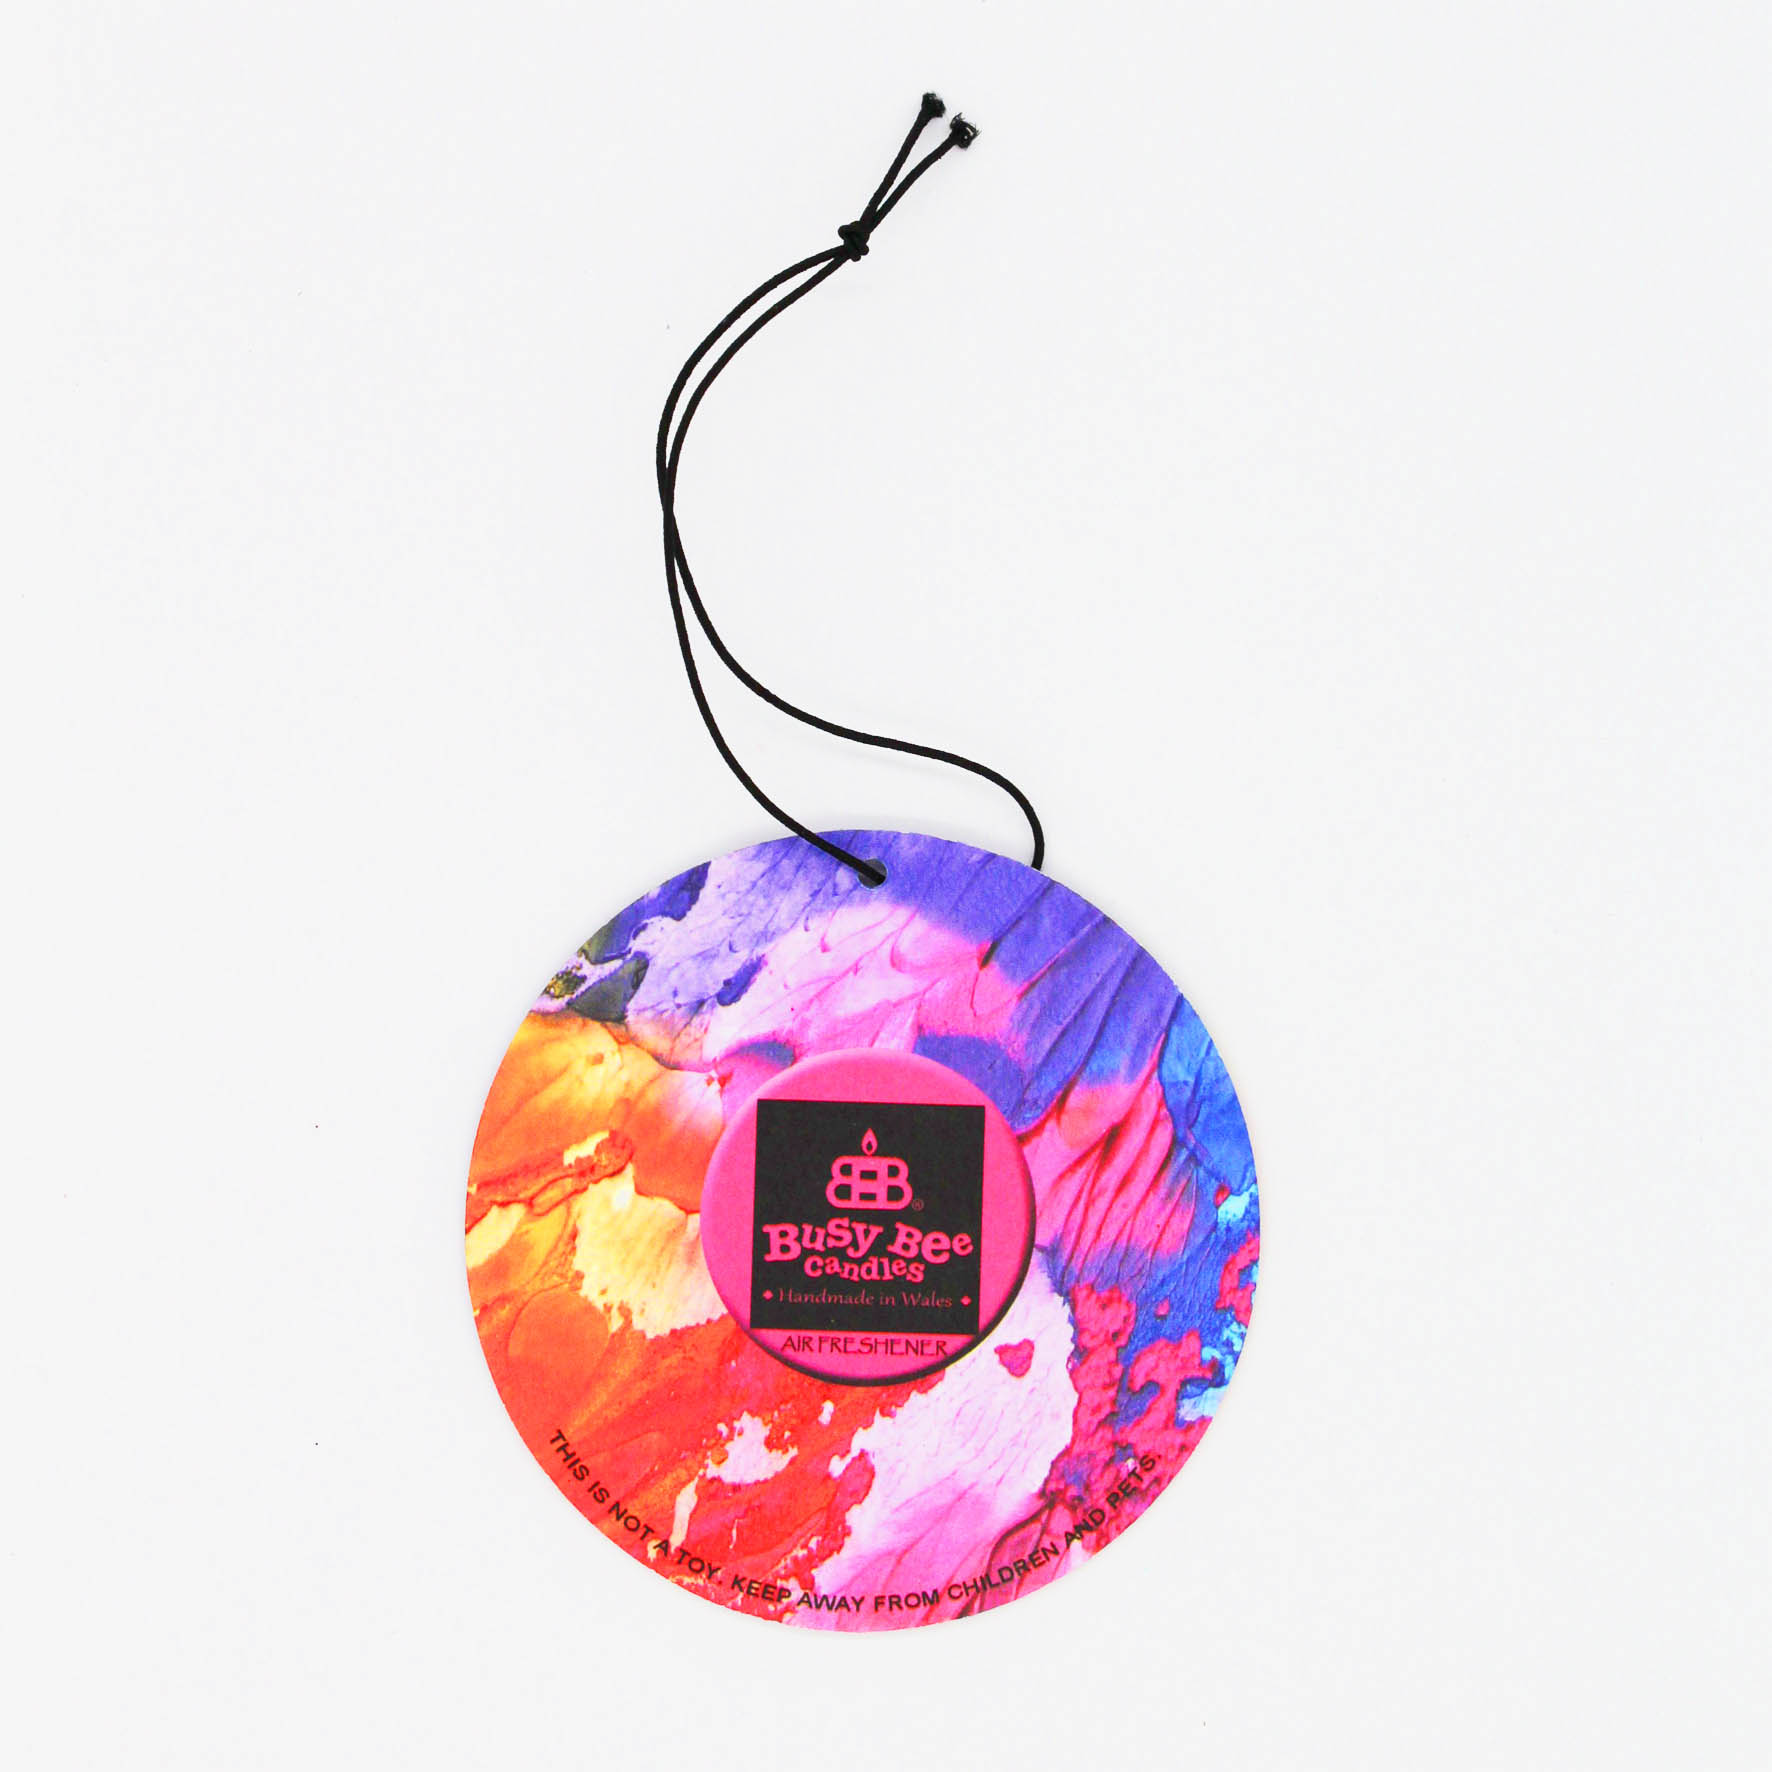 Orange & Clove Hanging Air Freshener